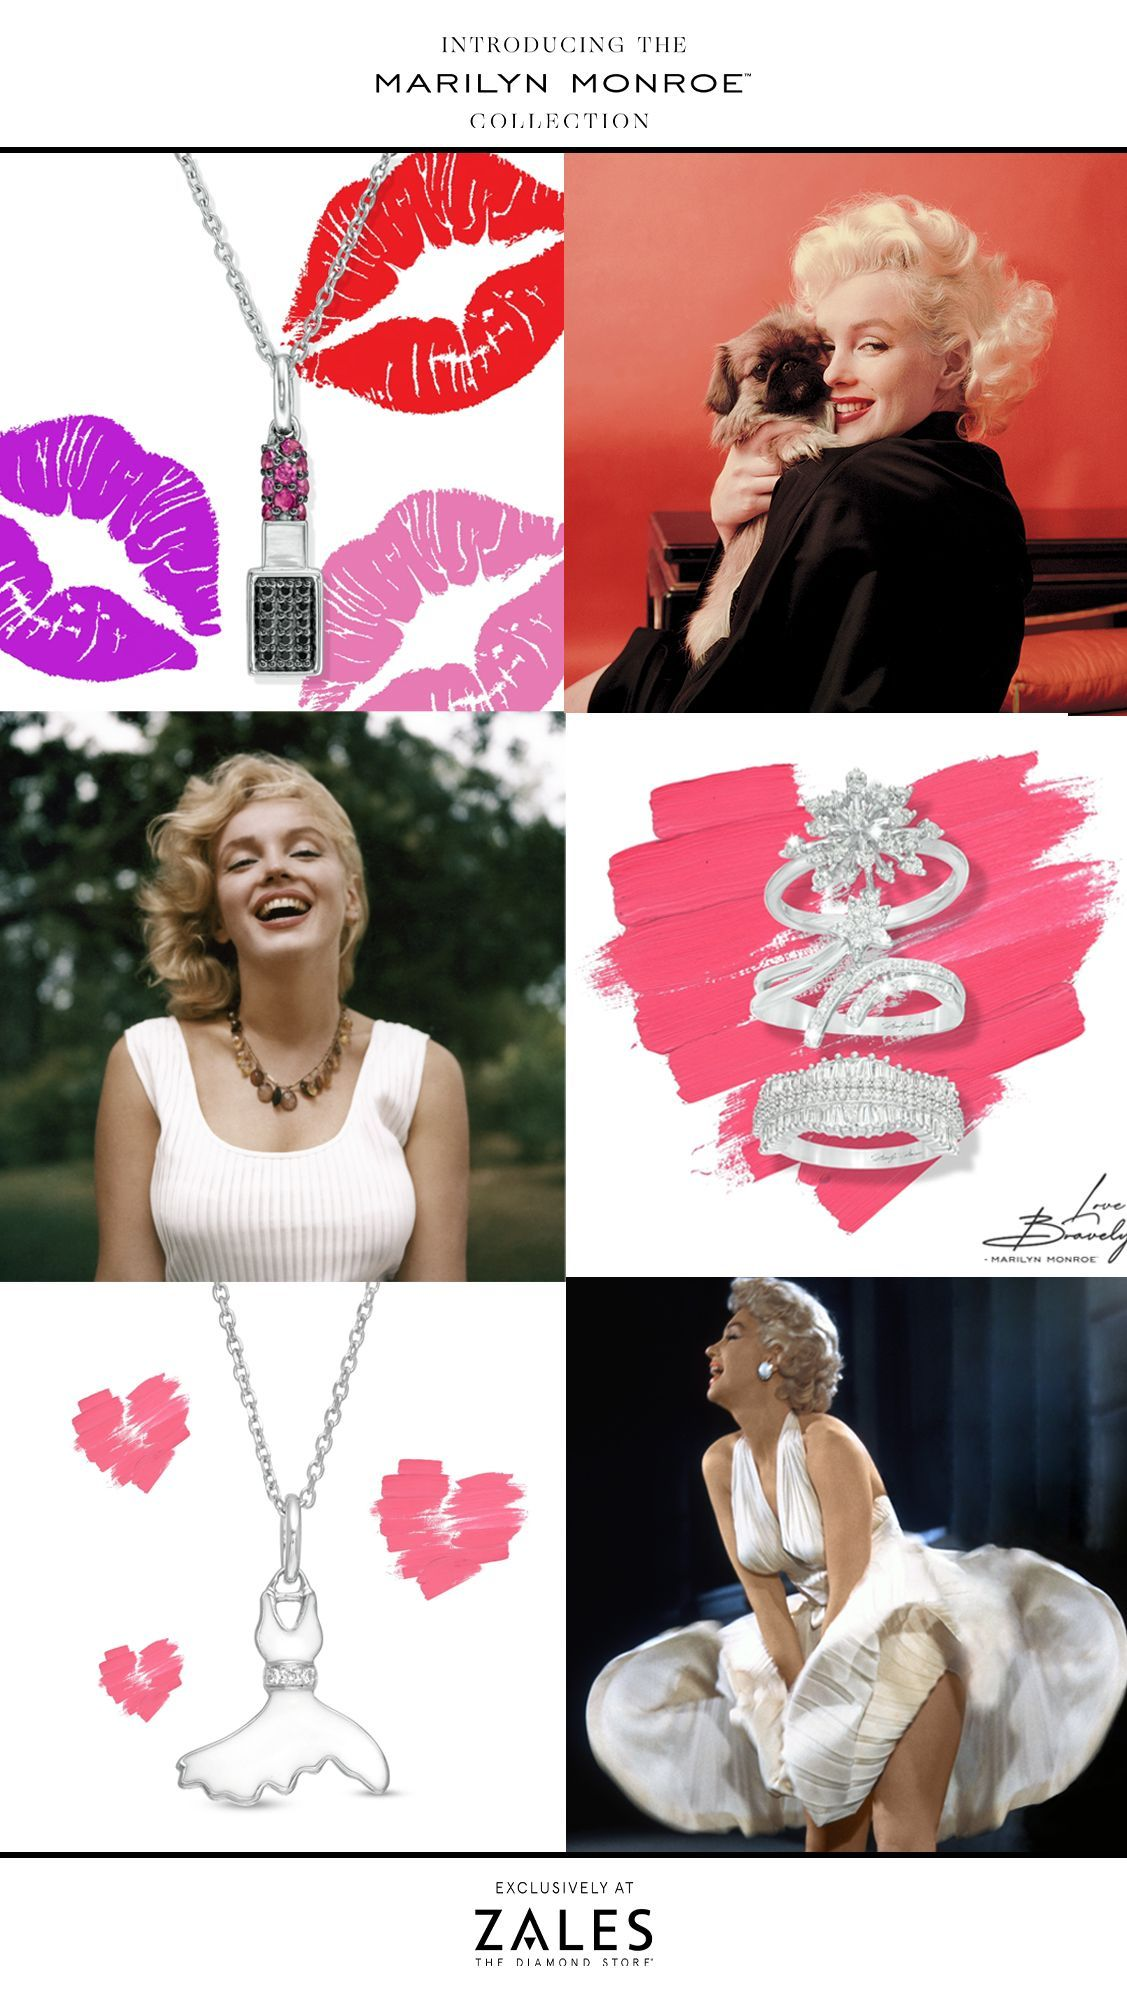 16++ Marilyn monroe jewelry collection at zales info